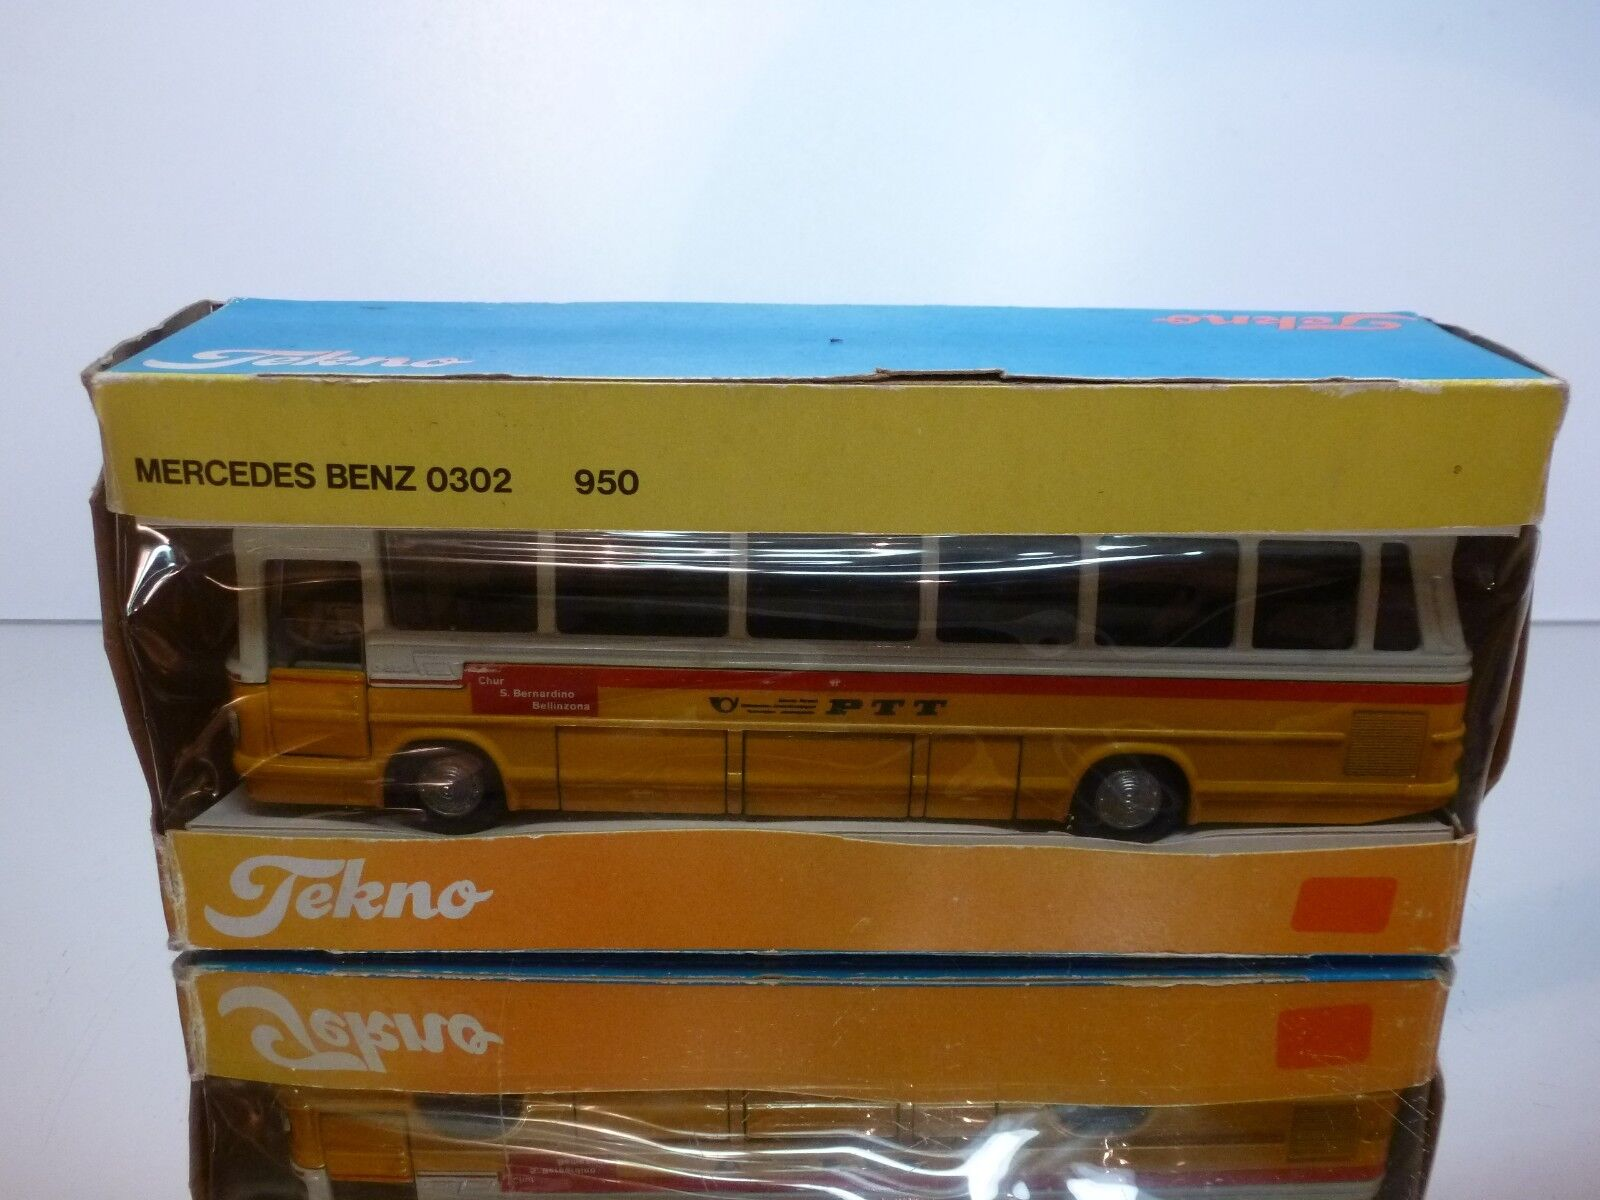 TEKNO HOLLAND 950 MERCEDES O302 SWISS PTT  - jaune 1 50 - VERY GOOD IN BOX  10 jours de retour